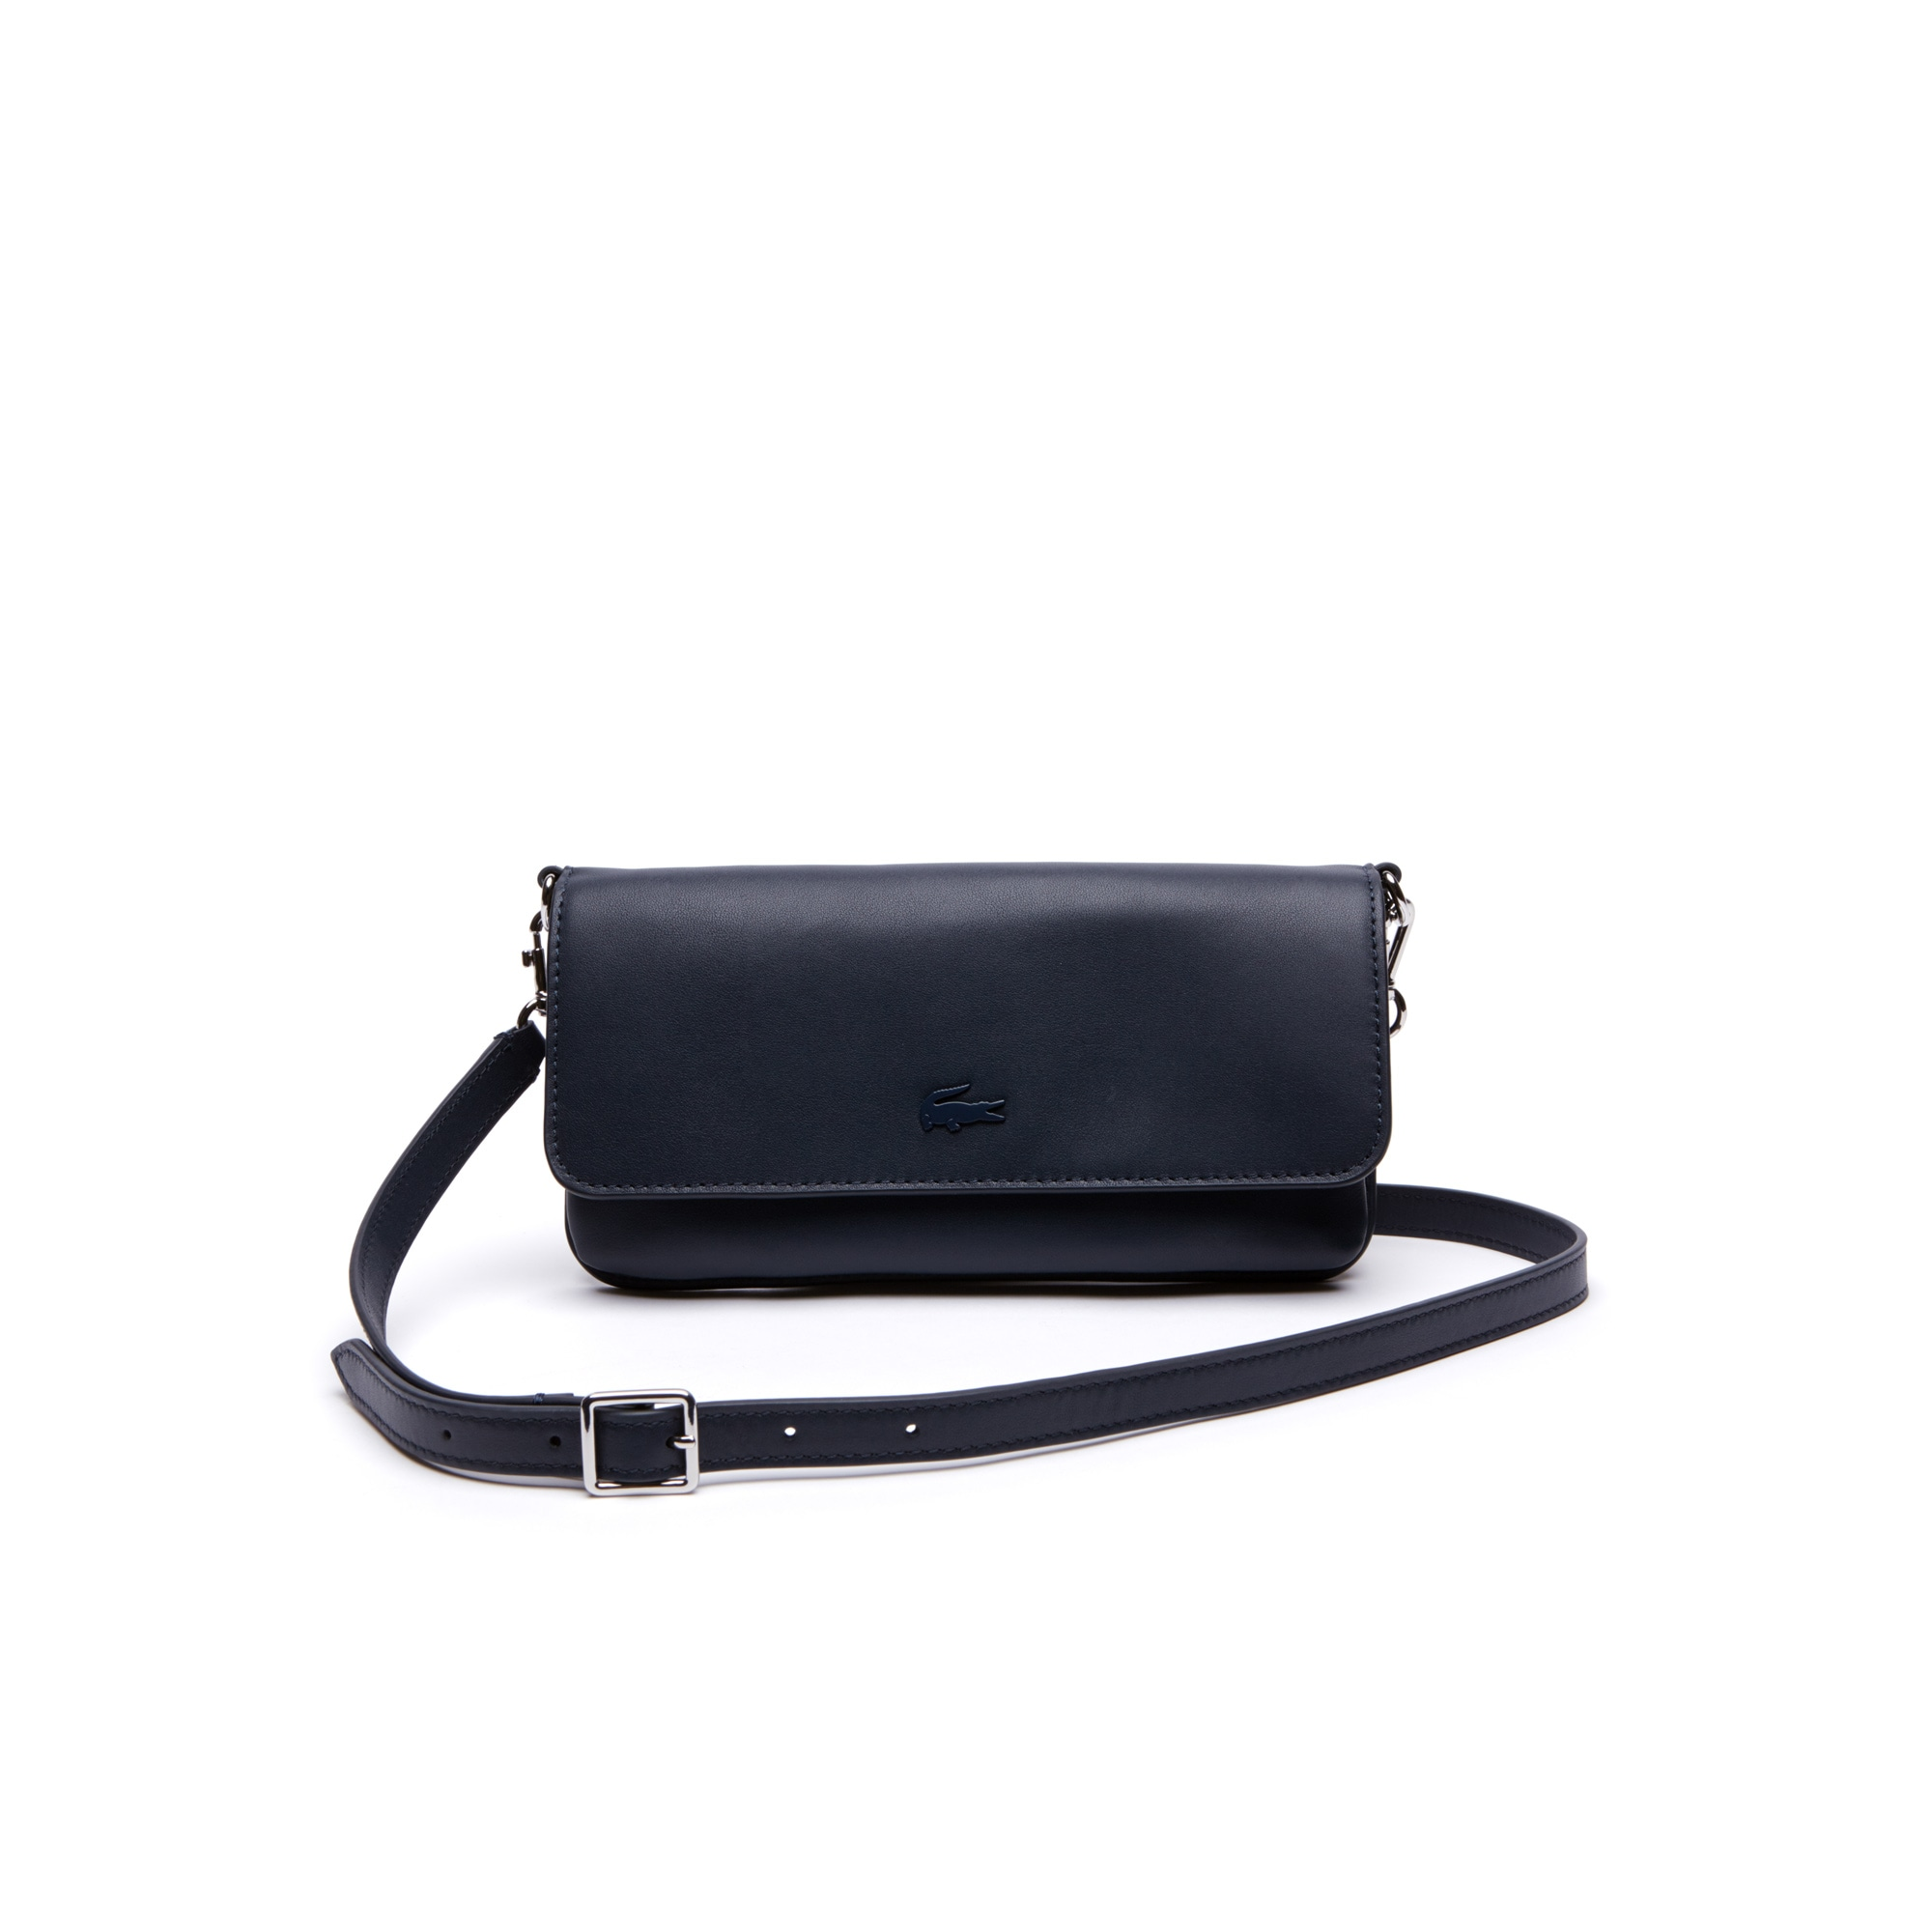 Women's Purity Soft Monochrome Leather 6 Card Pouch Wallet ...